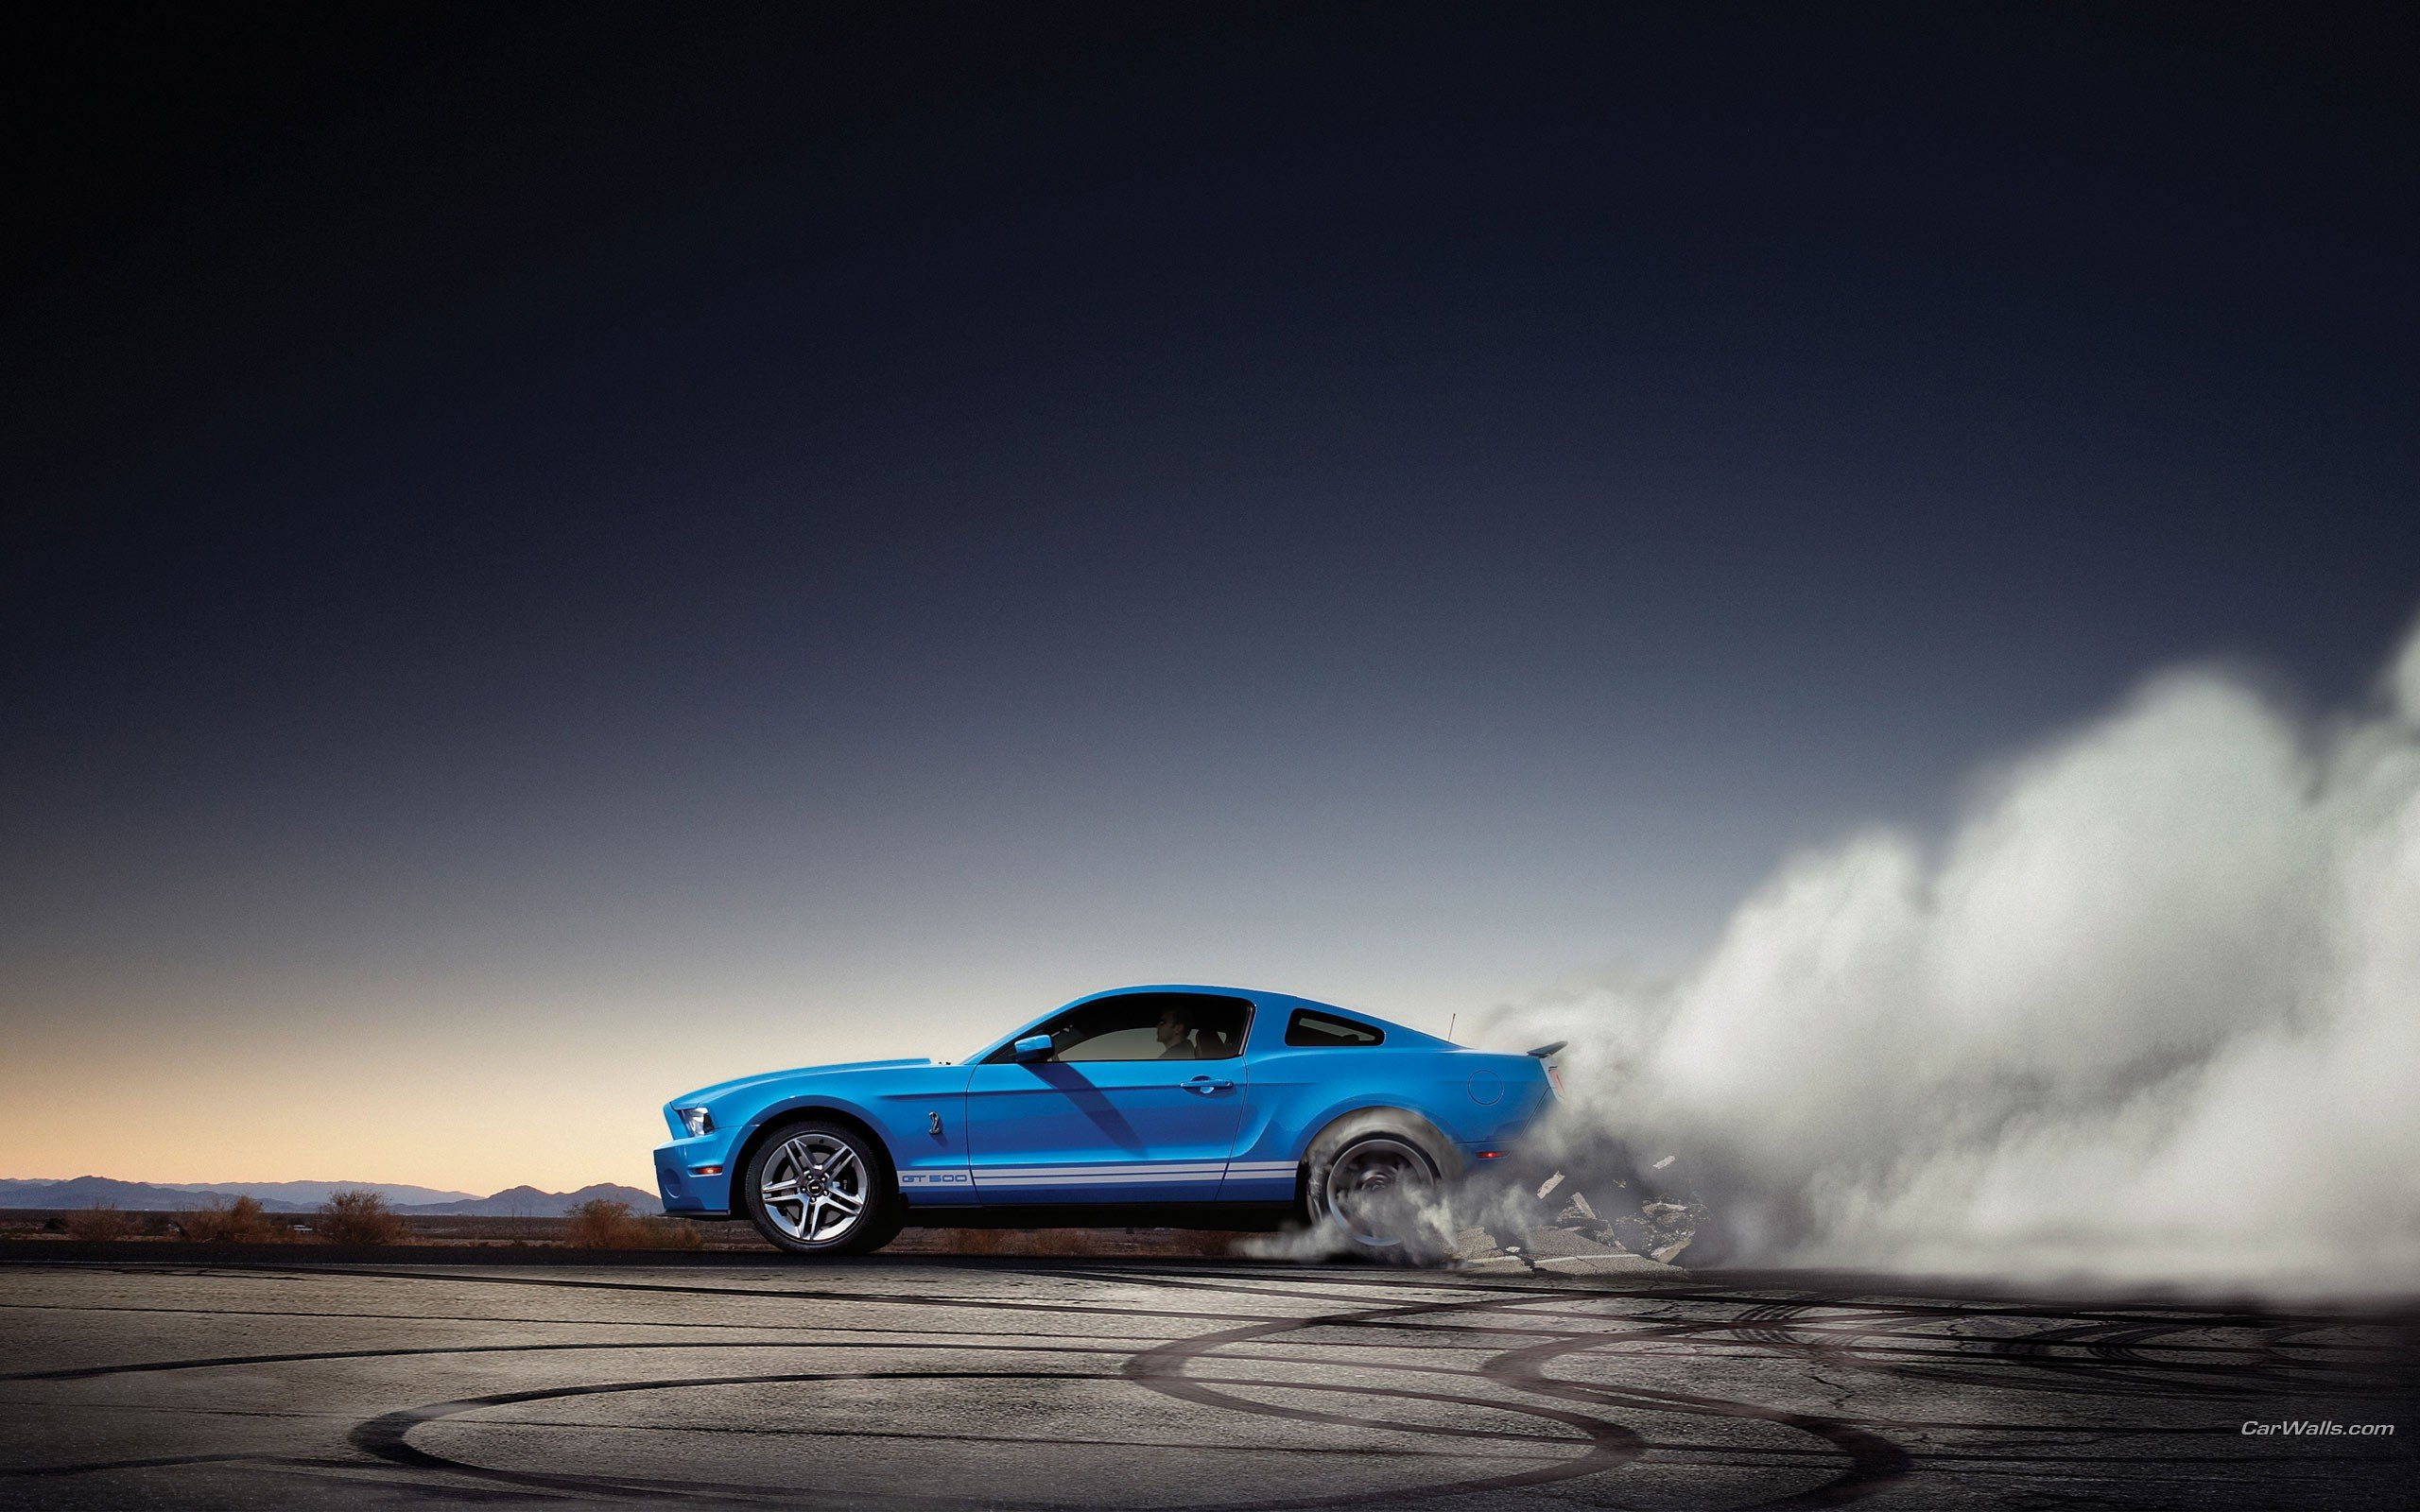 Muscle Cars Burnout Wallpapers Burnout Ford Shelby Ford Mustang Shelby Gt500 Wallpaper